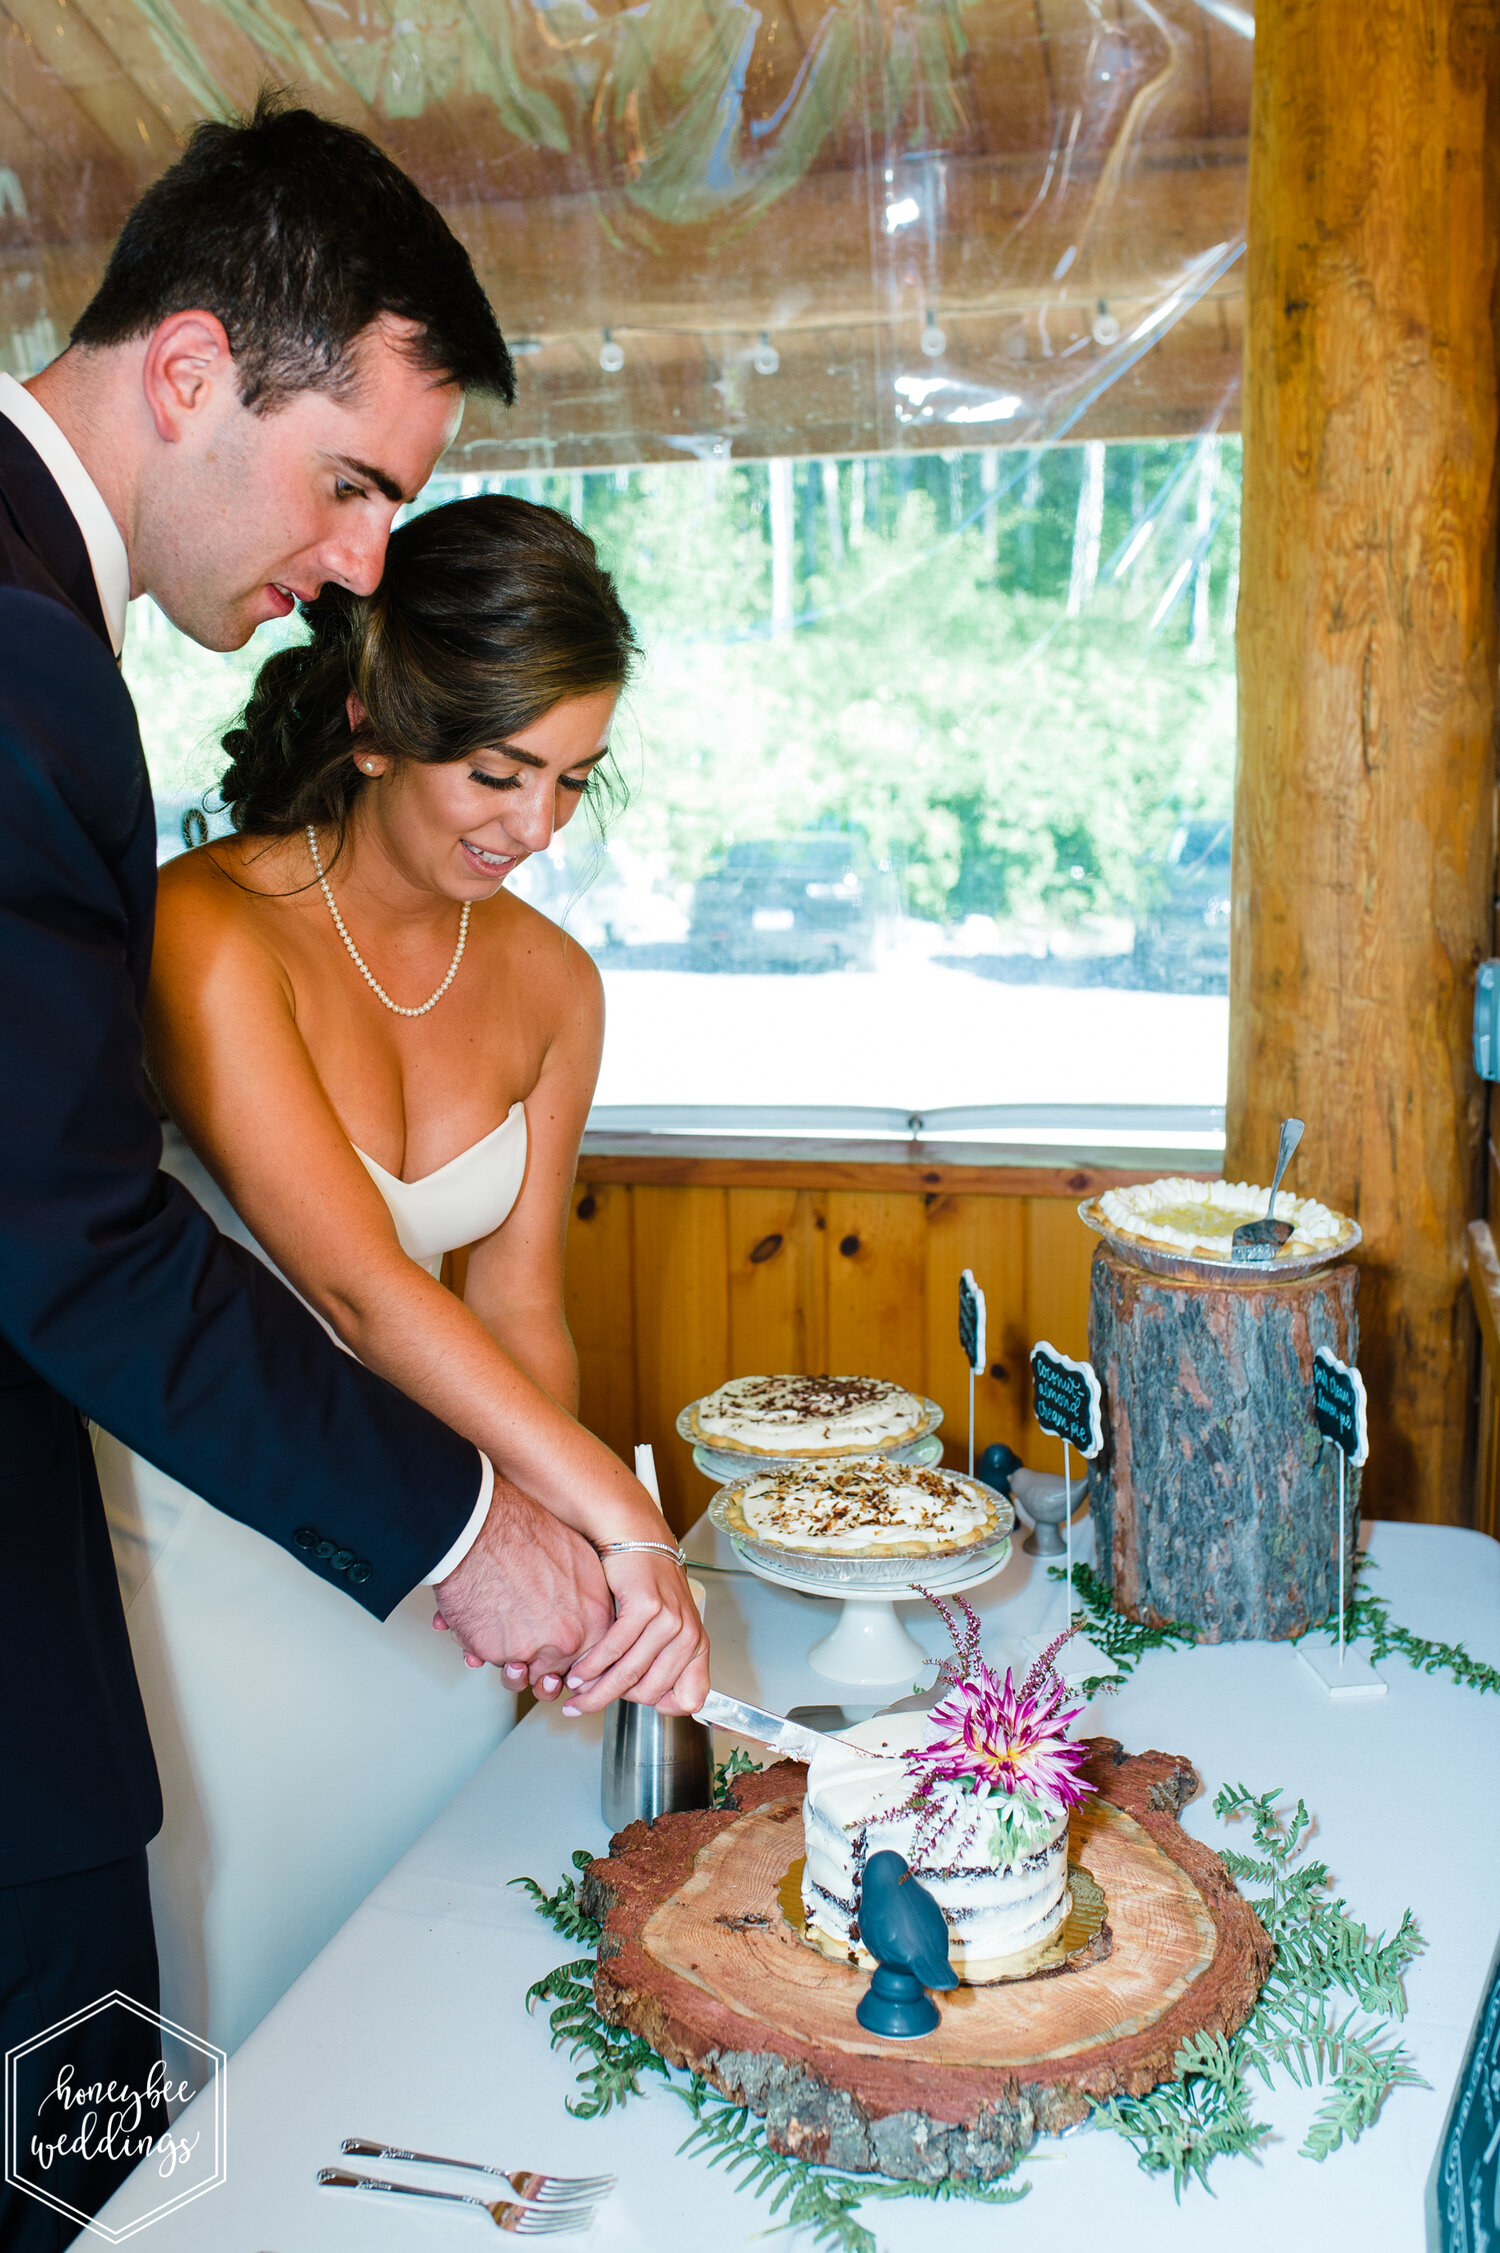 113Glacier National Park Wedding_Glacier Outdoor Center_Honeybee Weddings_Anna & Seth_July 21, 2019-2175.jpg